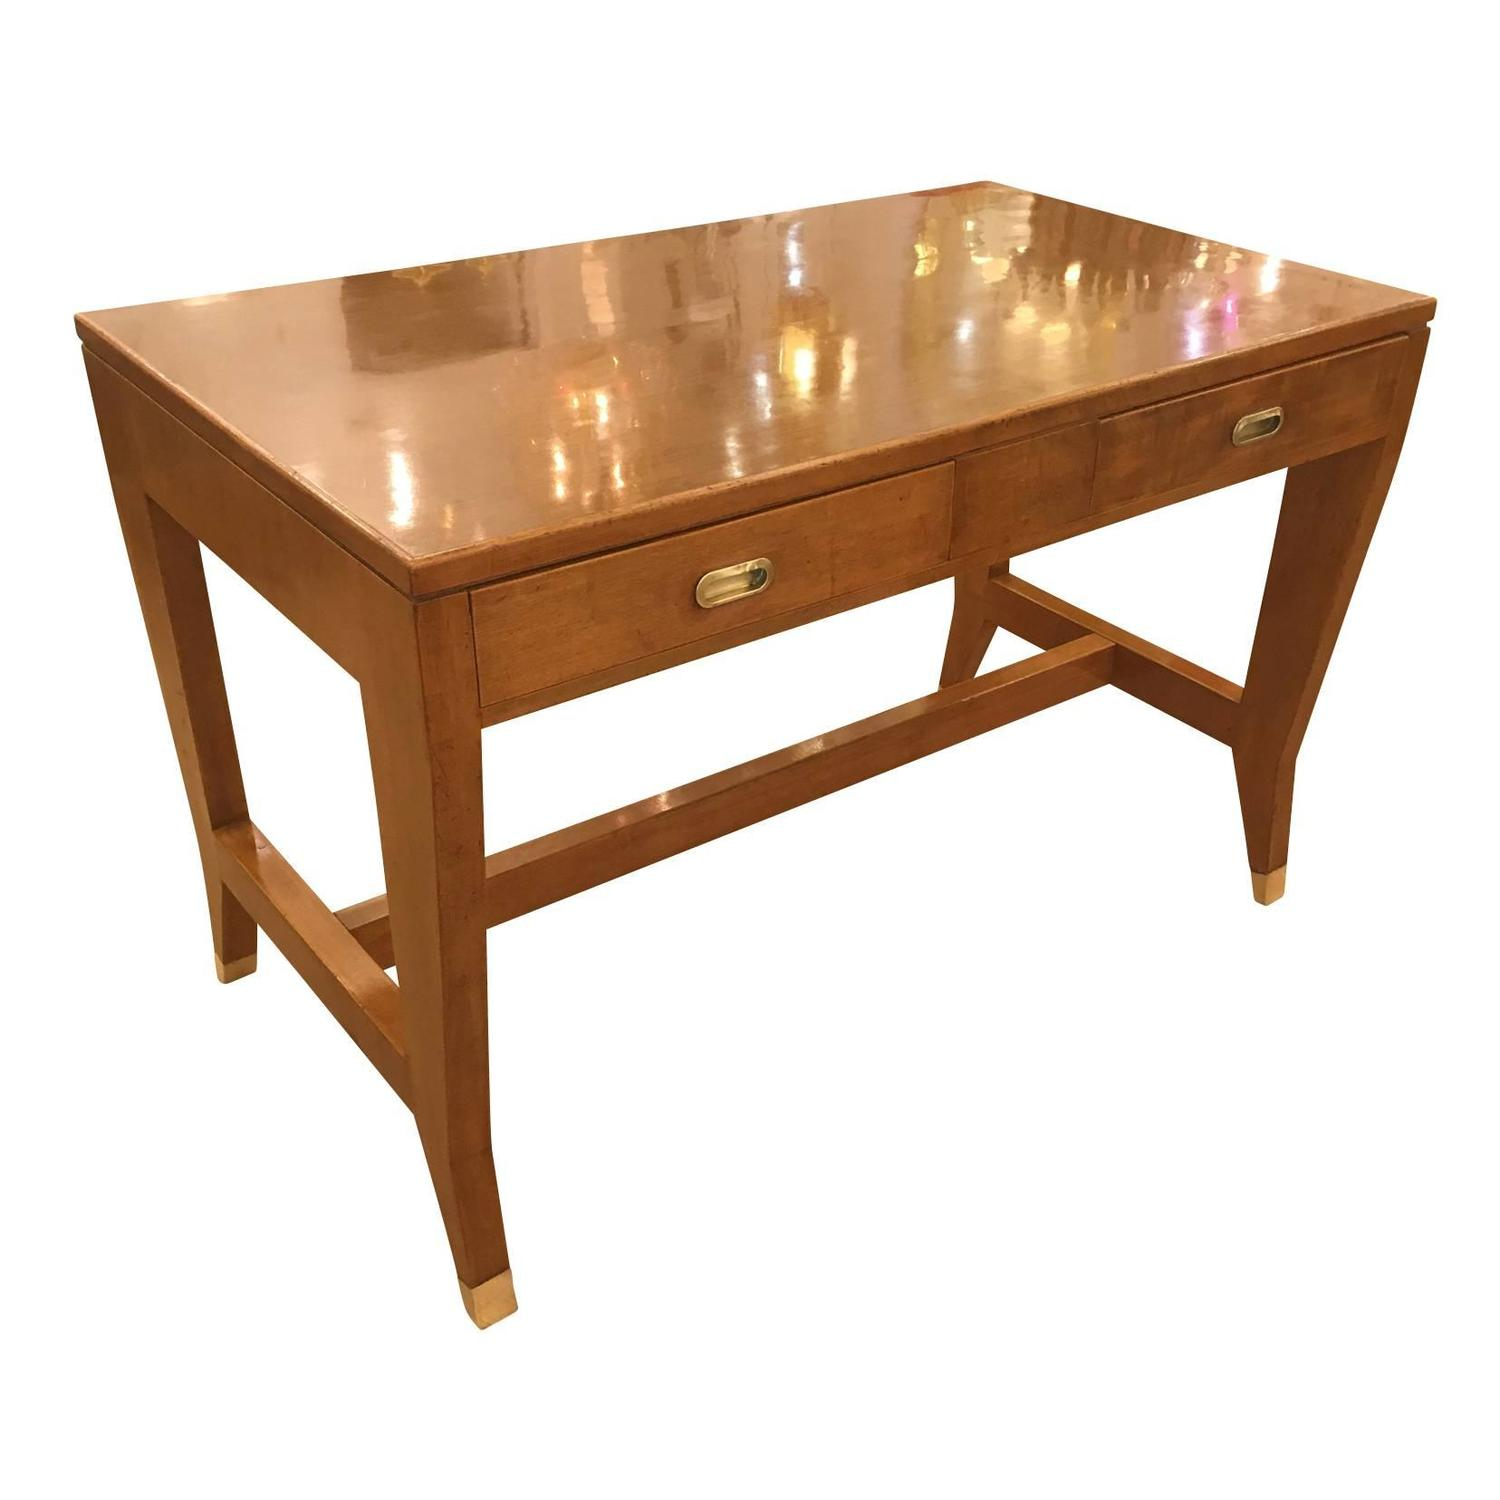 Gio Ponti Tables 89 For Sale at 1stdibs